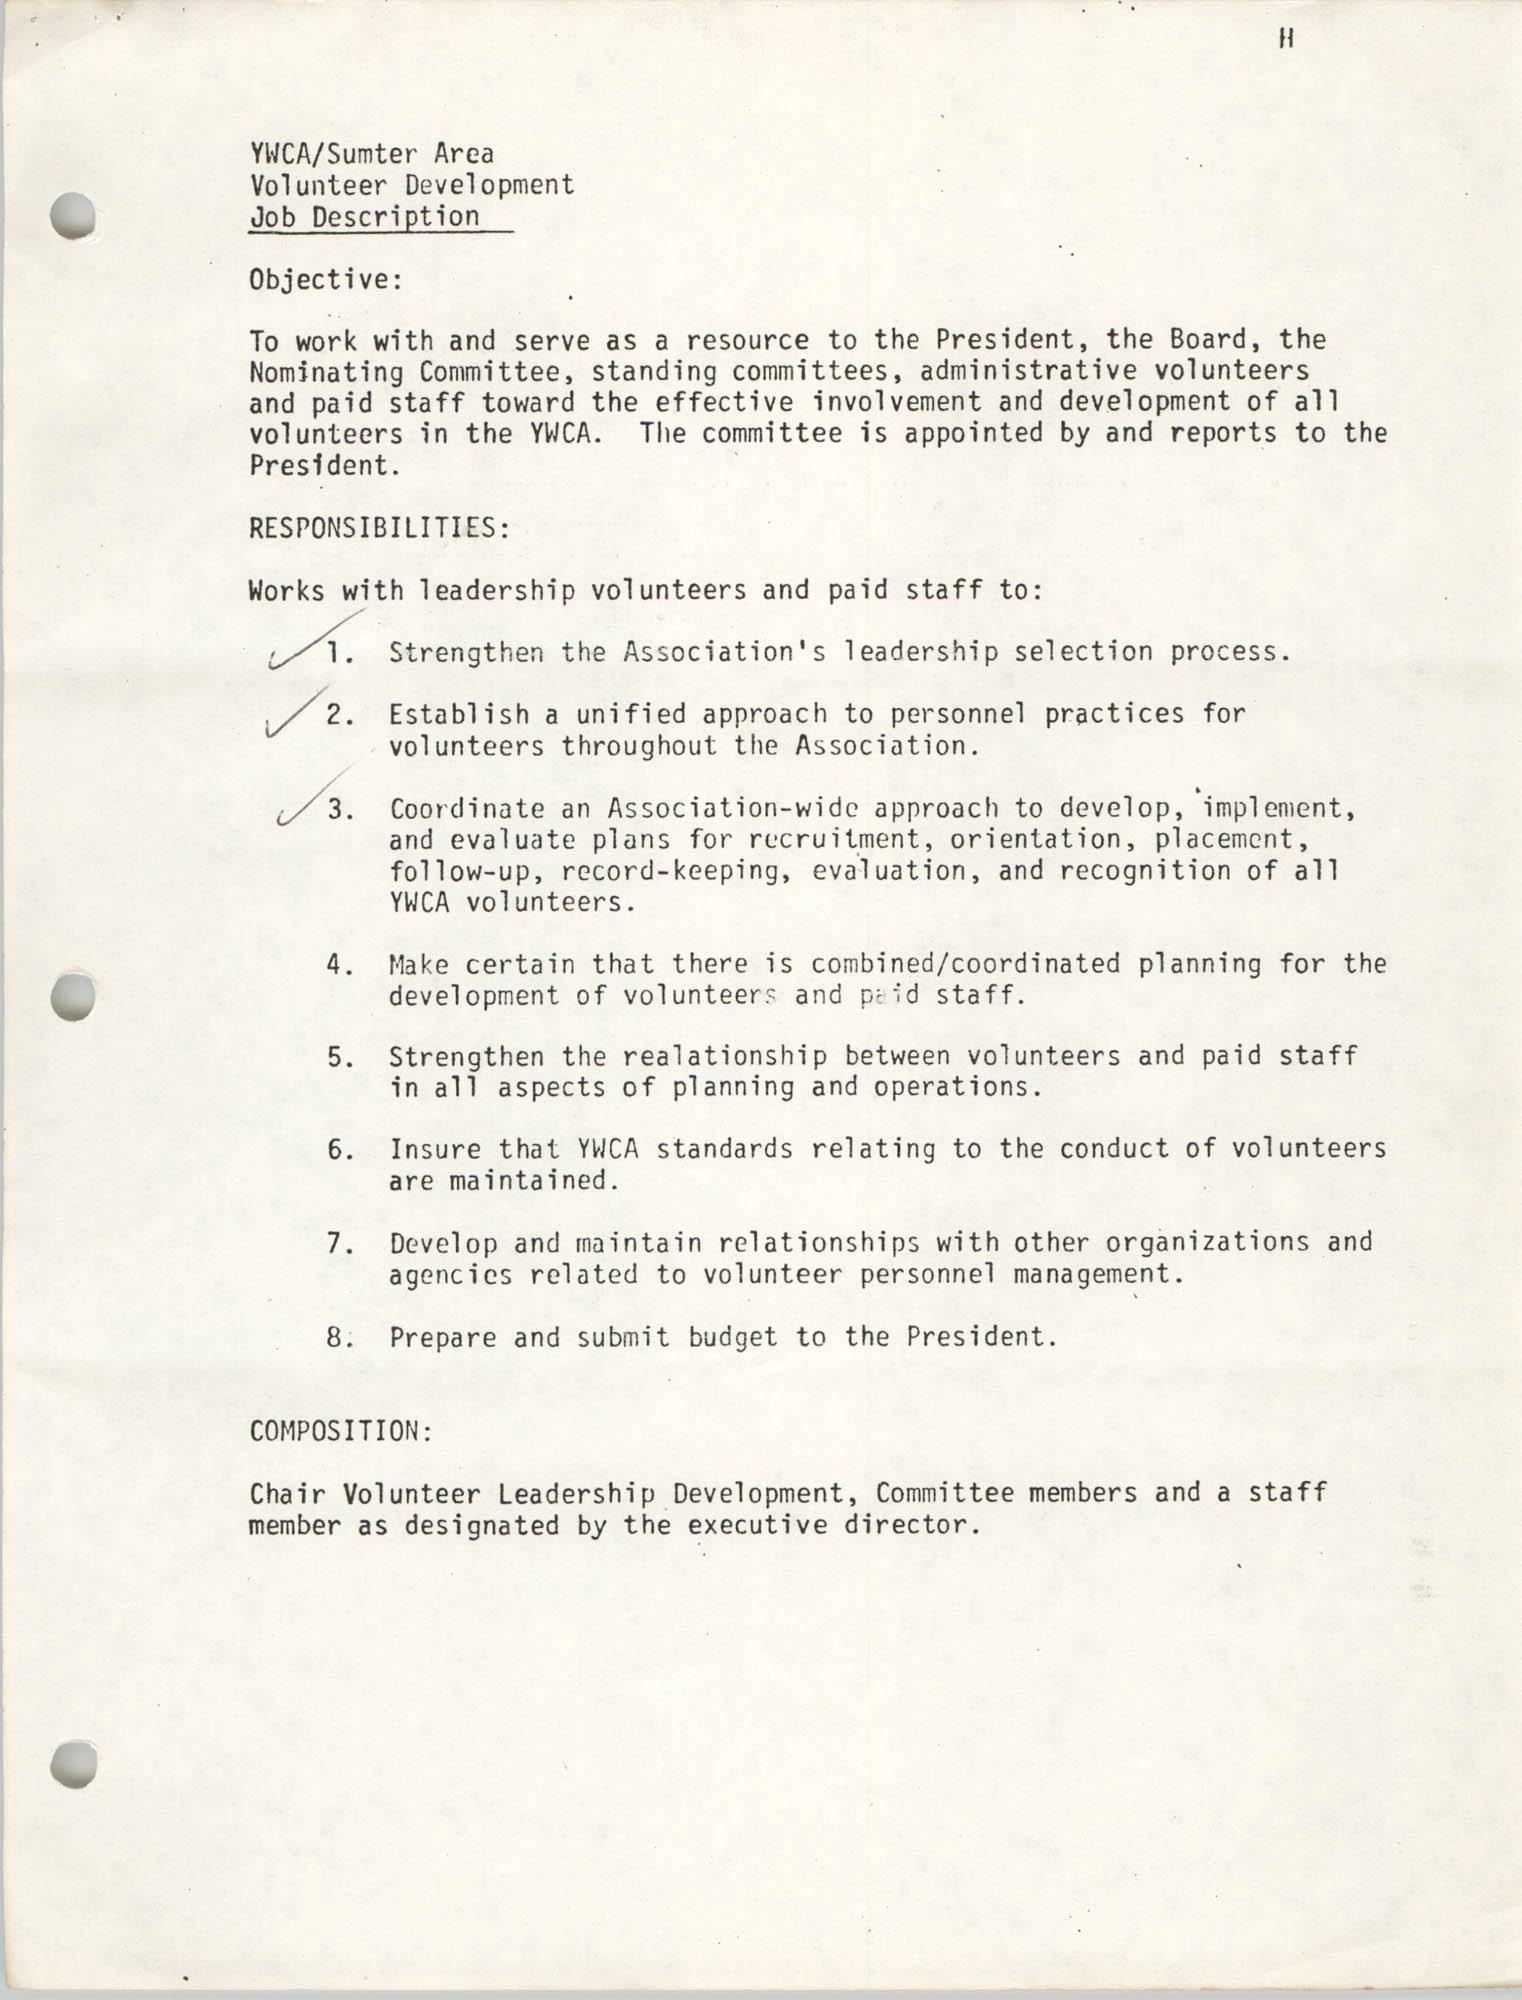 Y.W.C.A. of the Sumter Area Memorandum, January 11, 1982, Page 2